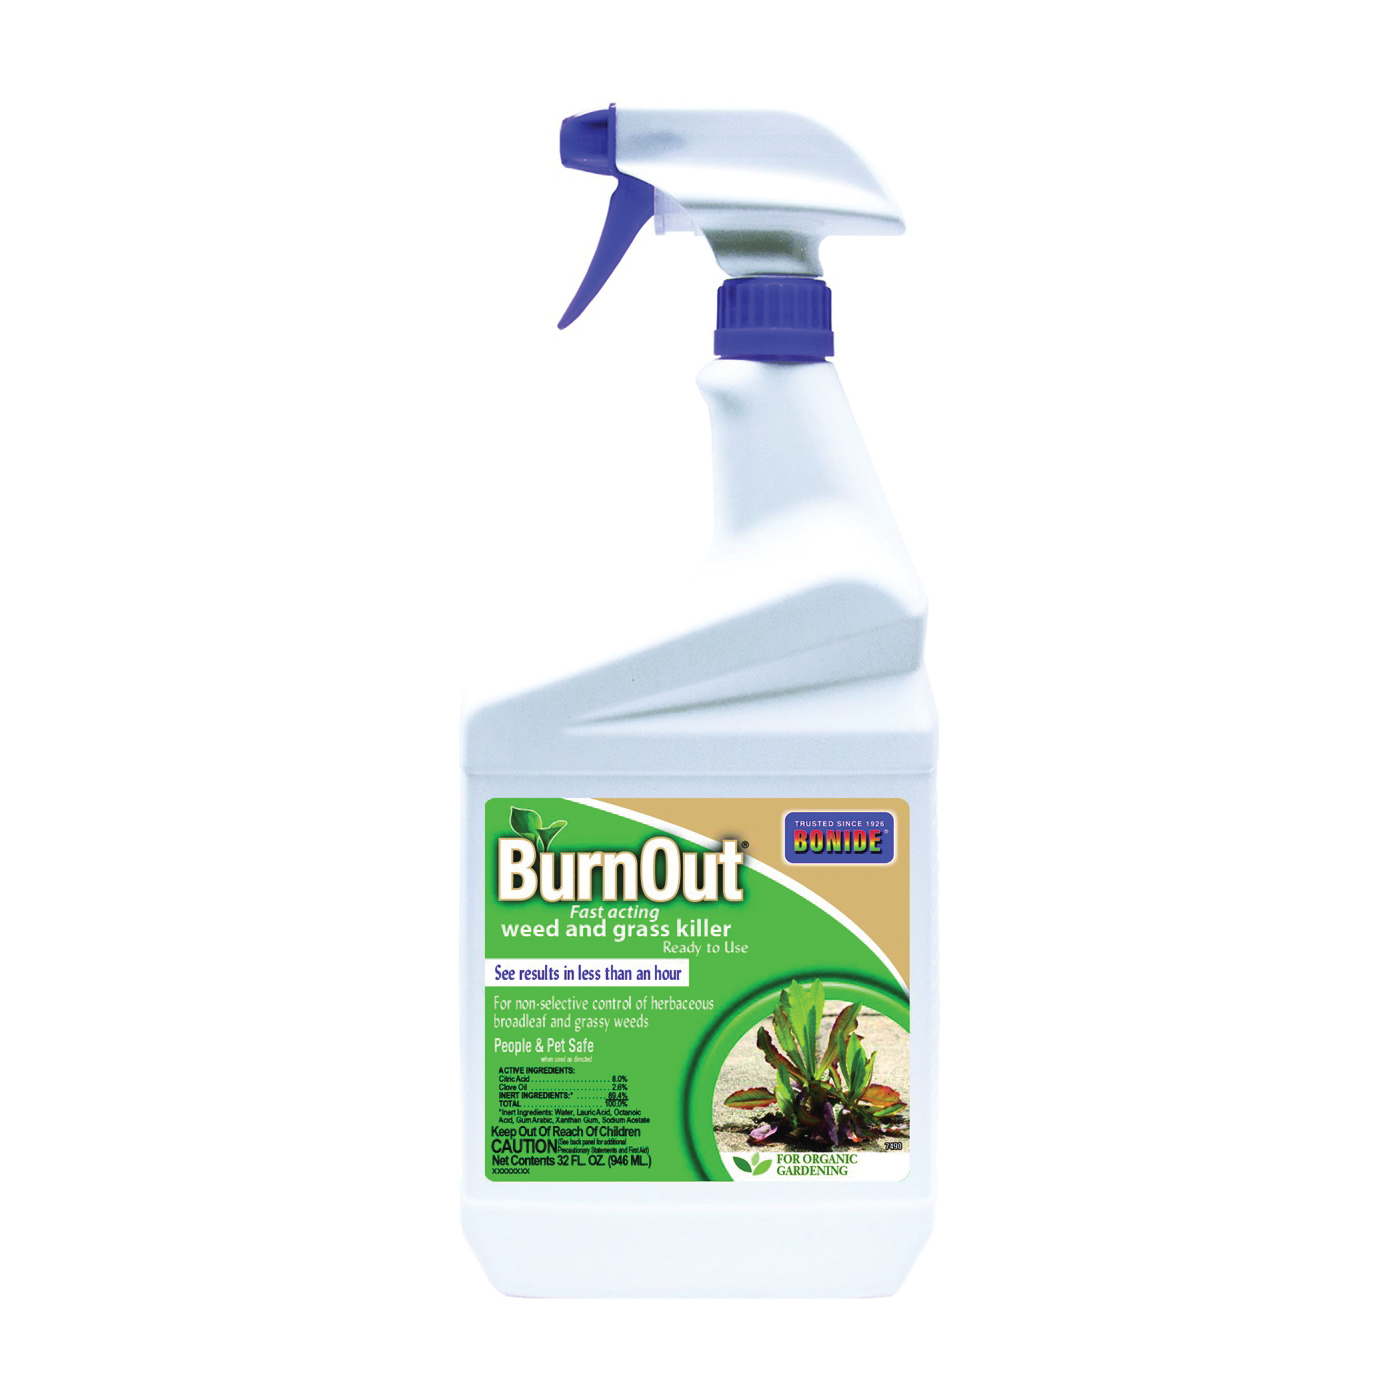 Picture of Bonide 7490 Weed and Grass Killer, Liquid, Light Yellow/White, 1 qt Package, Bottle